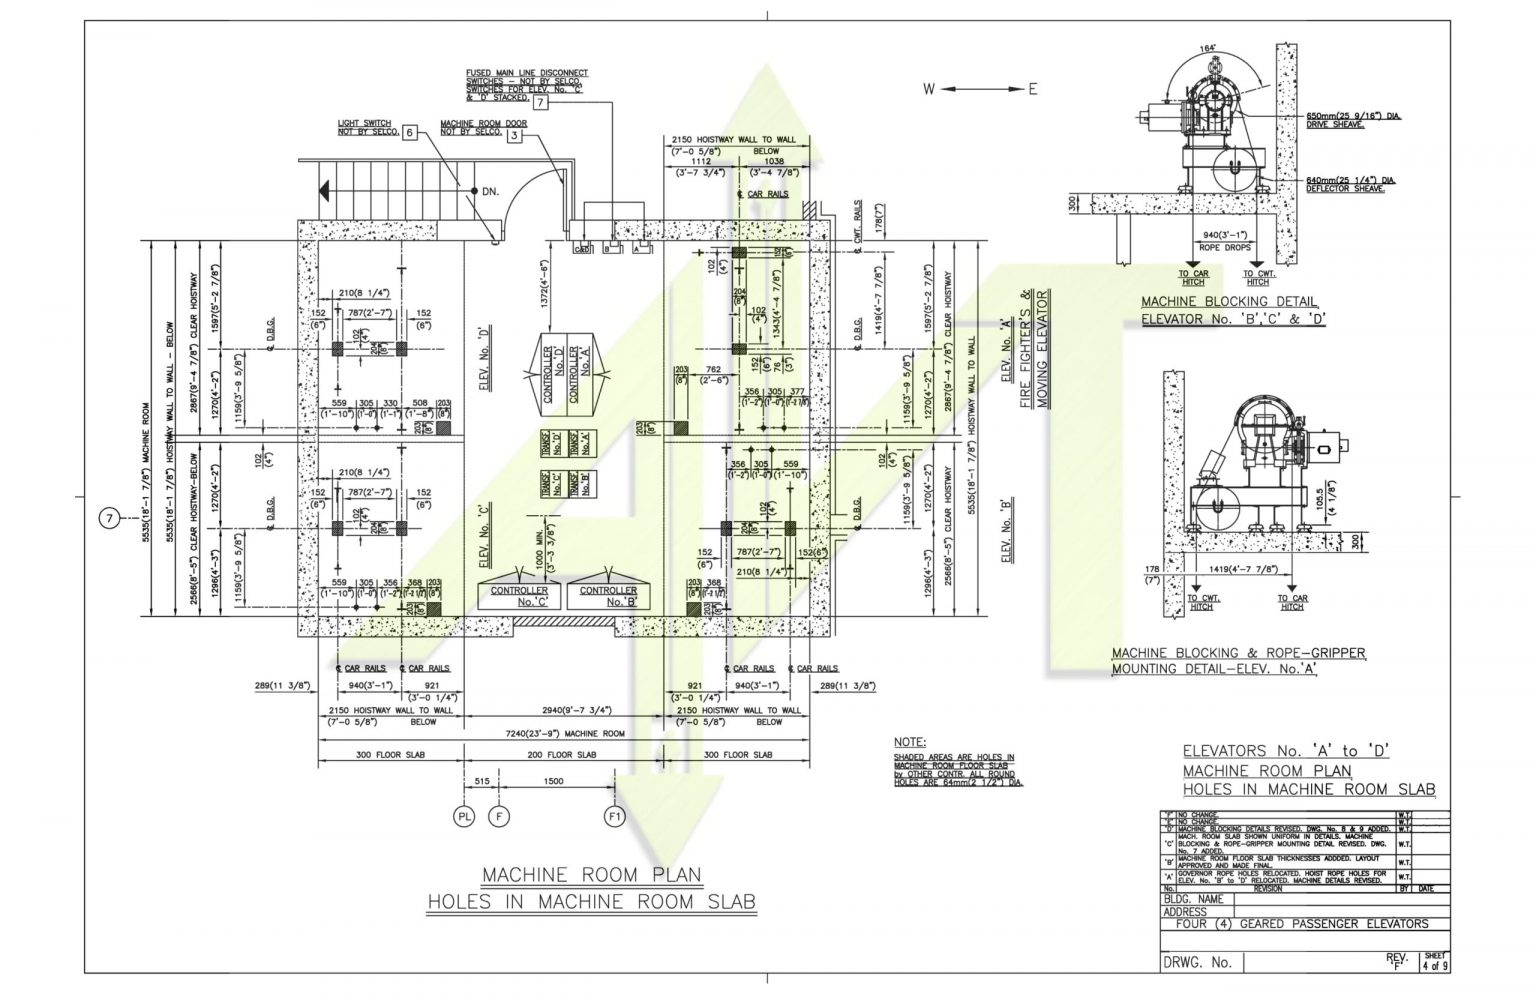 elevator manufacturer and supplier of high-rise and low-rise solutions